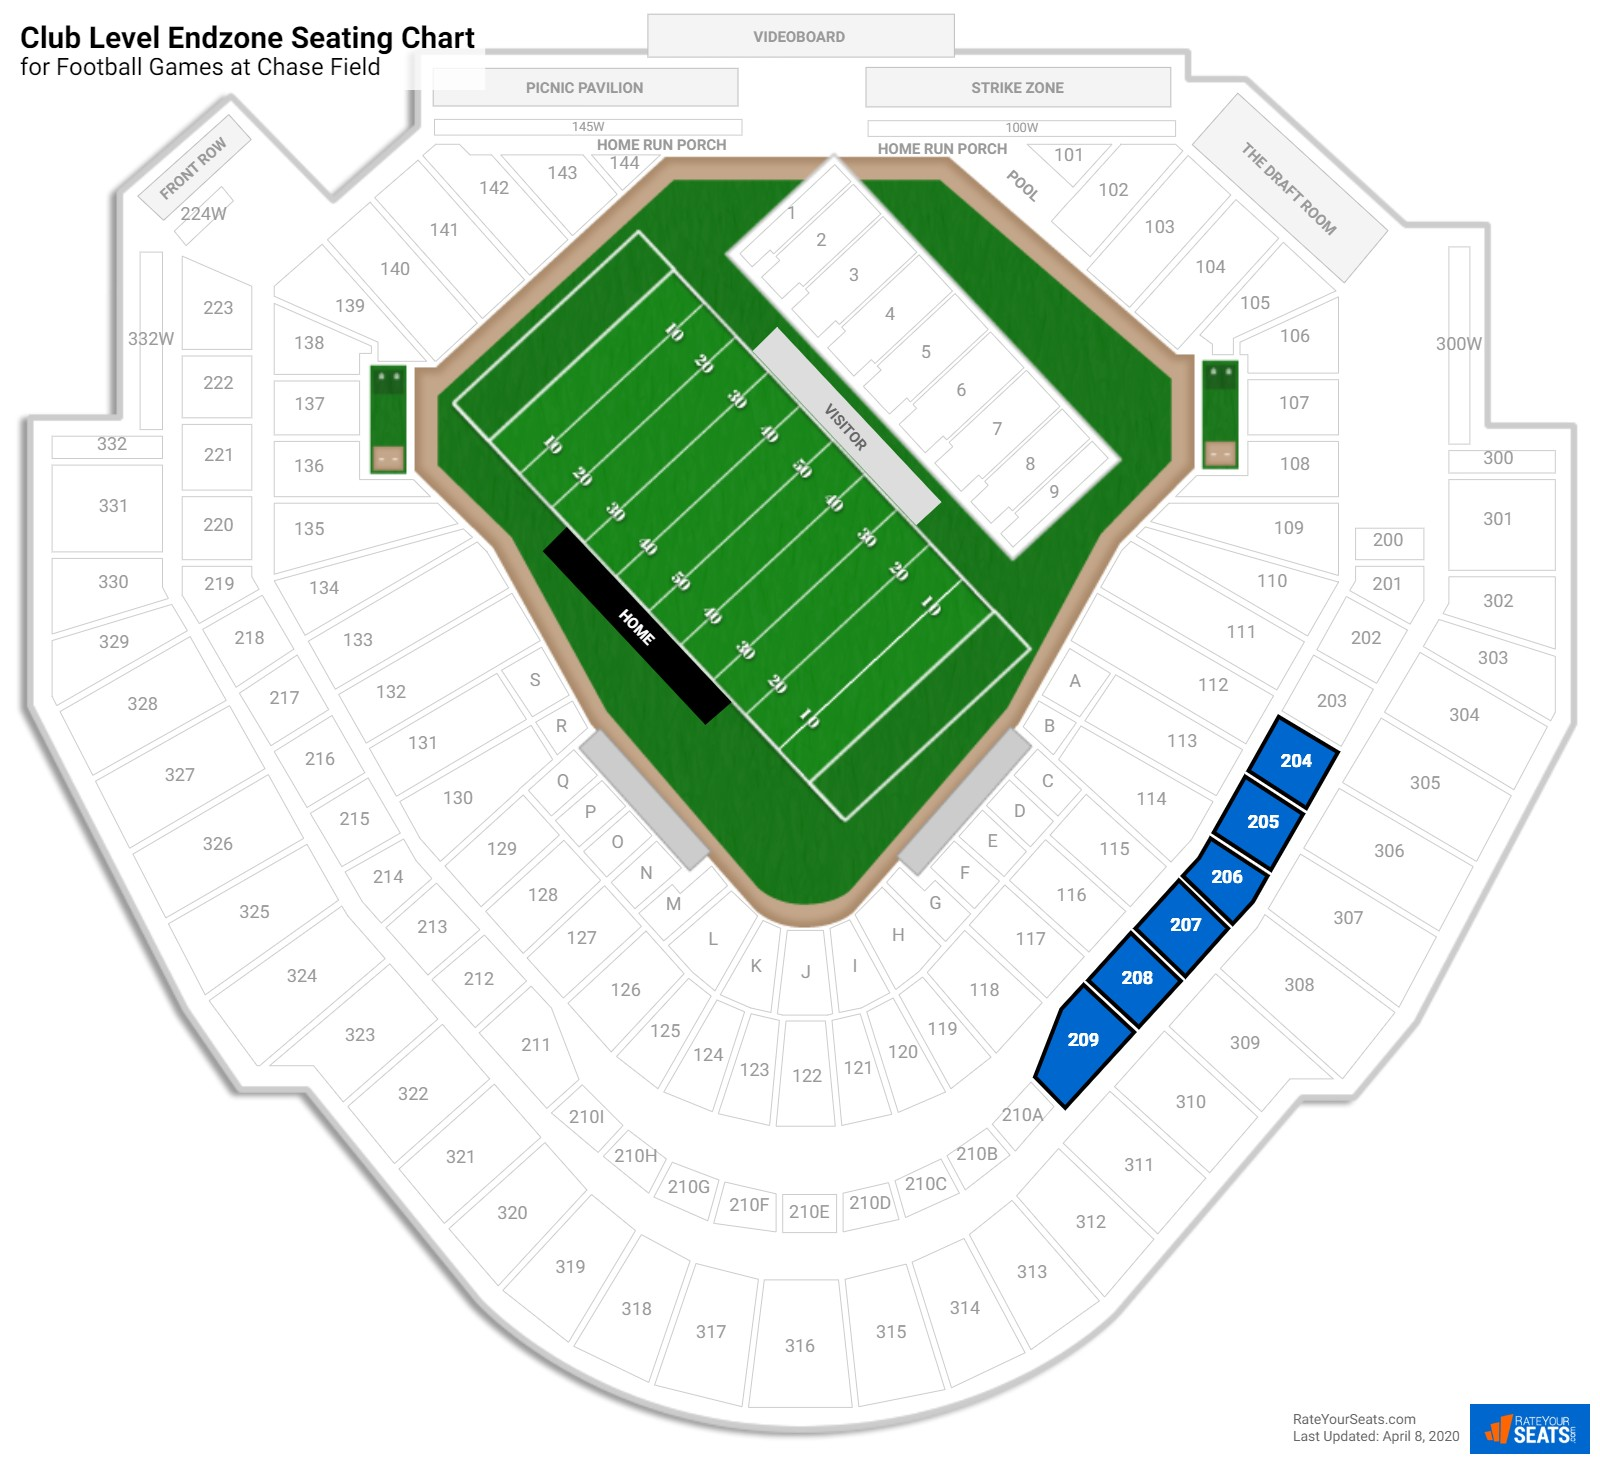 Chase Field Club Level Endzone seating chart